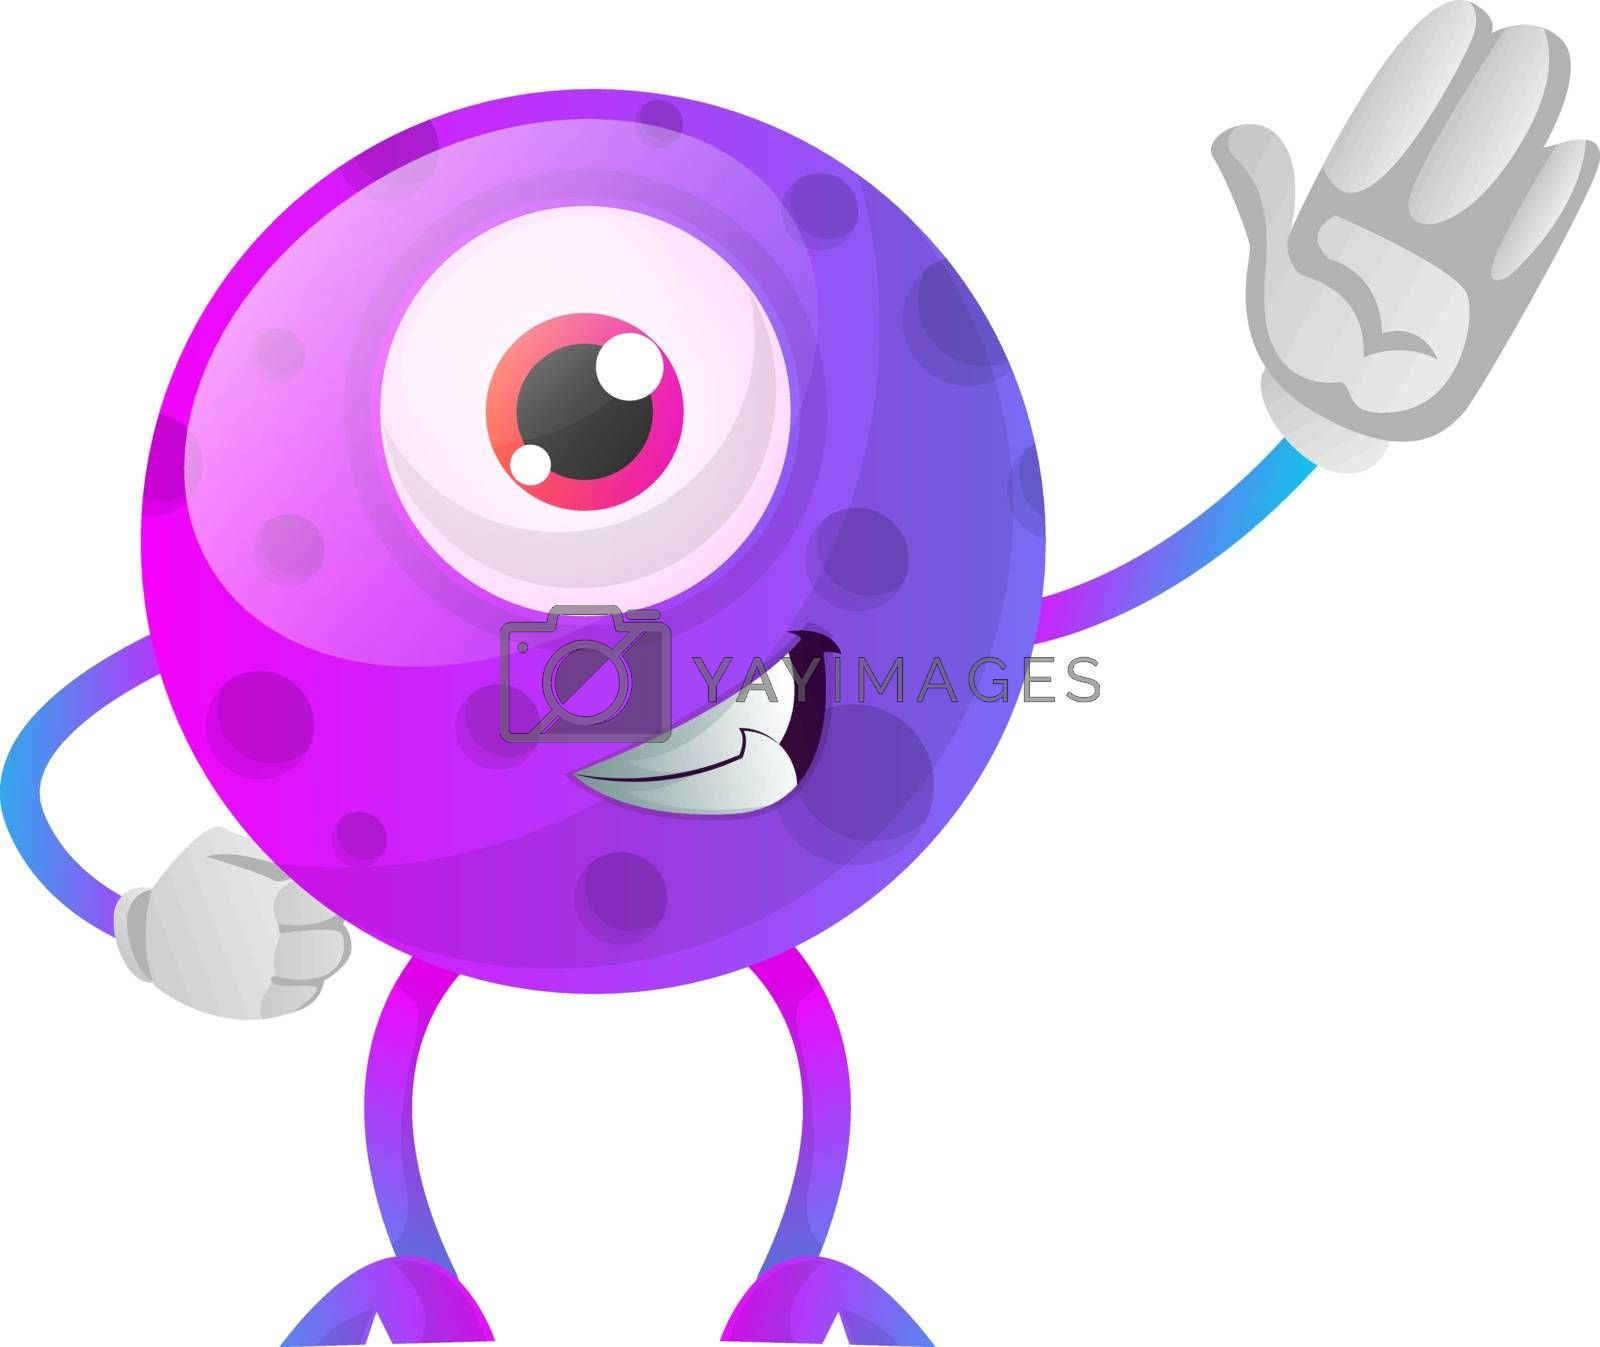 Royalty free image of One eyed purple monster waving illustration vector on white back by Morphart